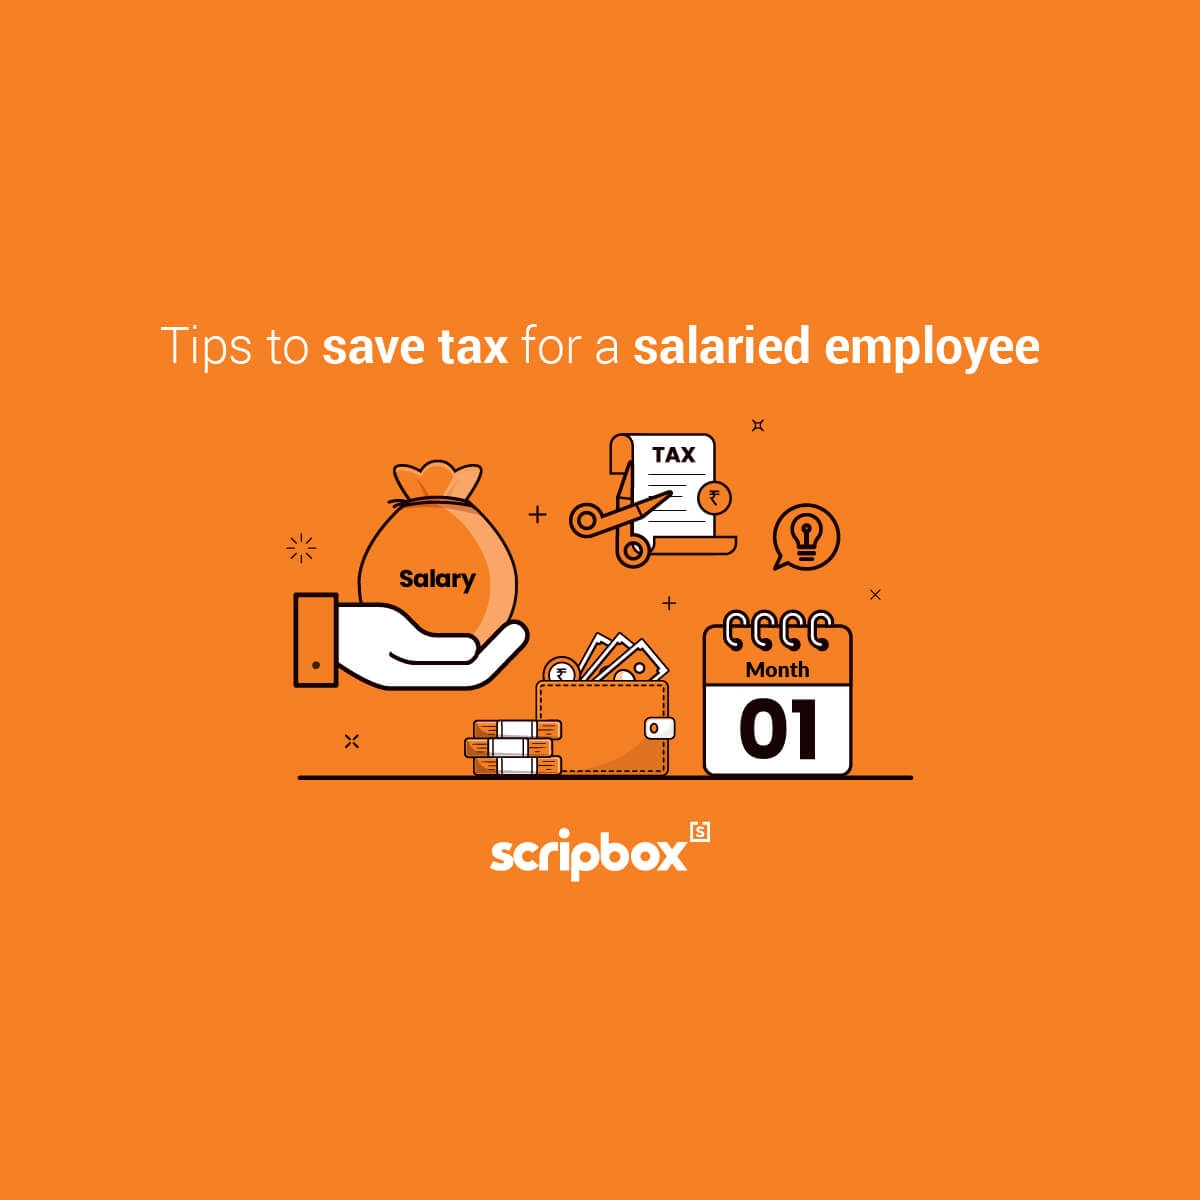 15 tips for salaried employee to save tax